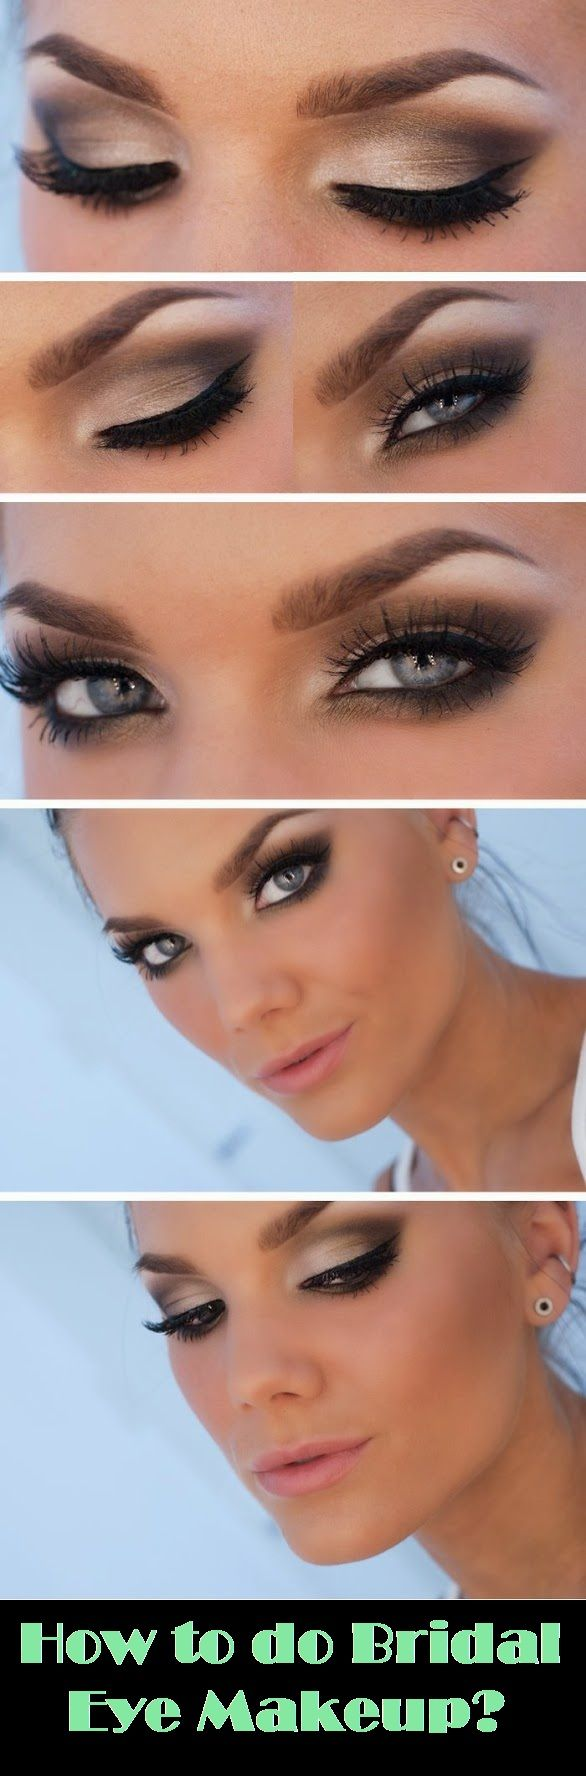 Wedding day eyes #onpoint #lookbeautifulfeelbeautiful www.envyhereyes.com